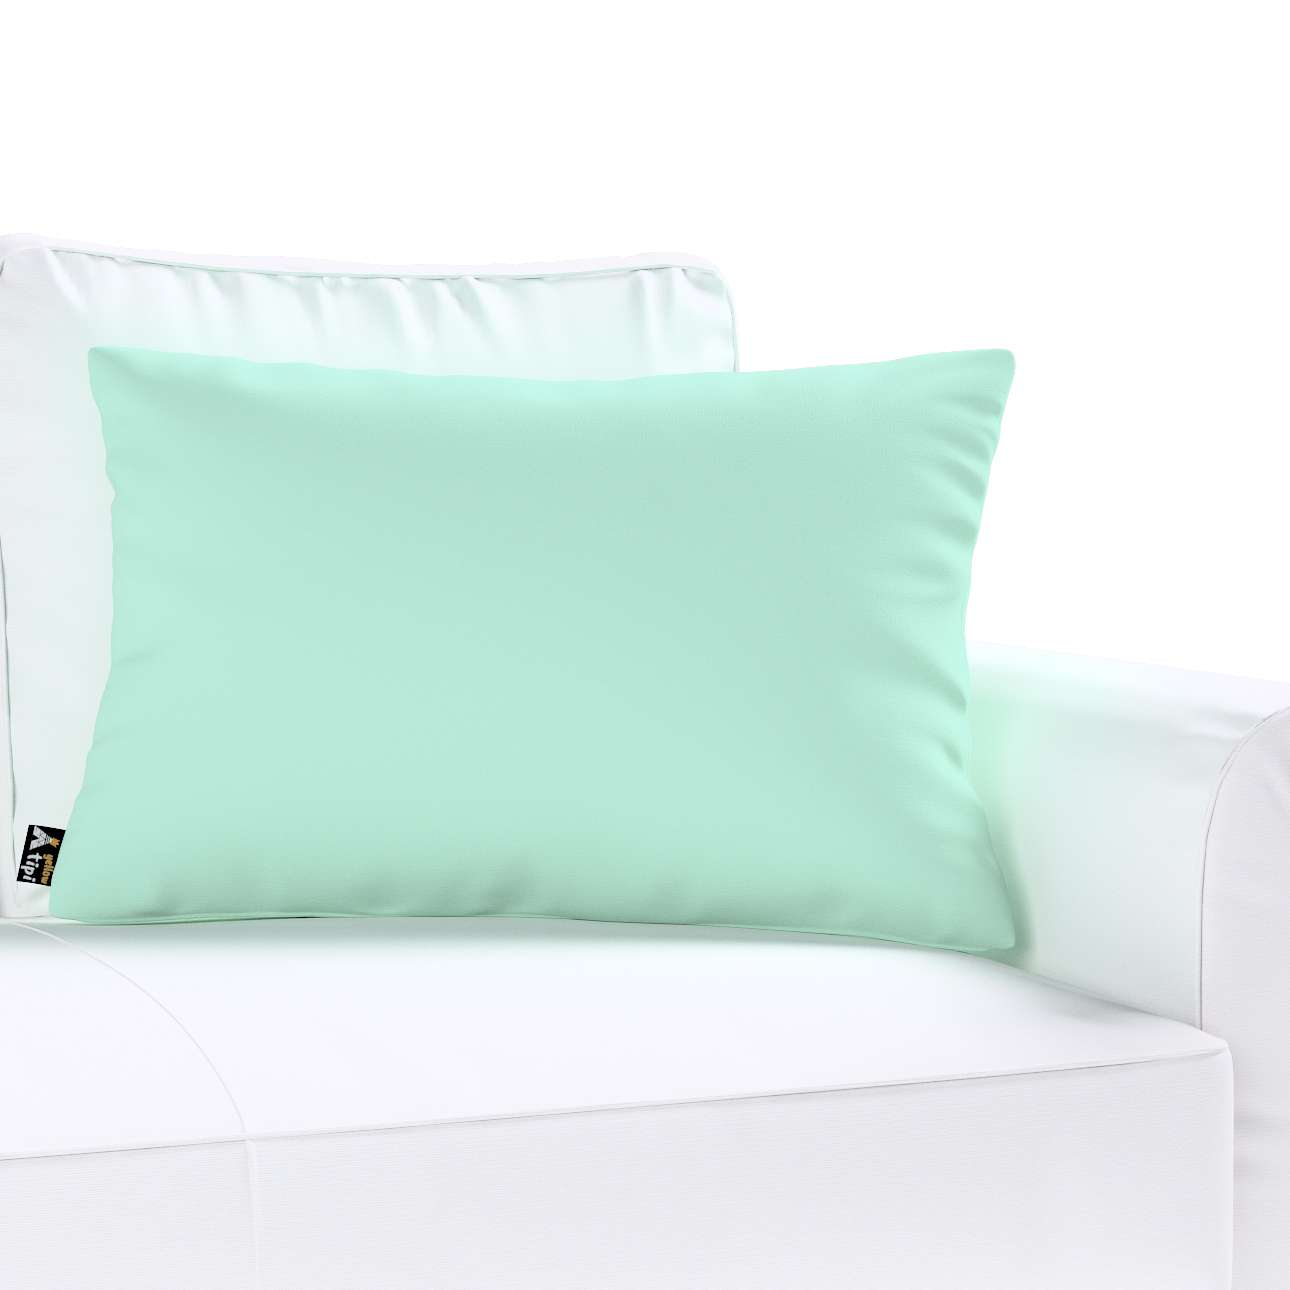 Milly rectangular cushion cover in collection Happiness, fabric: 133-37